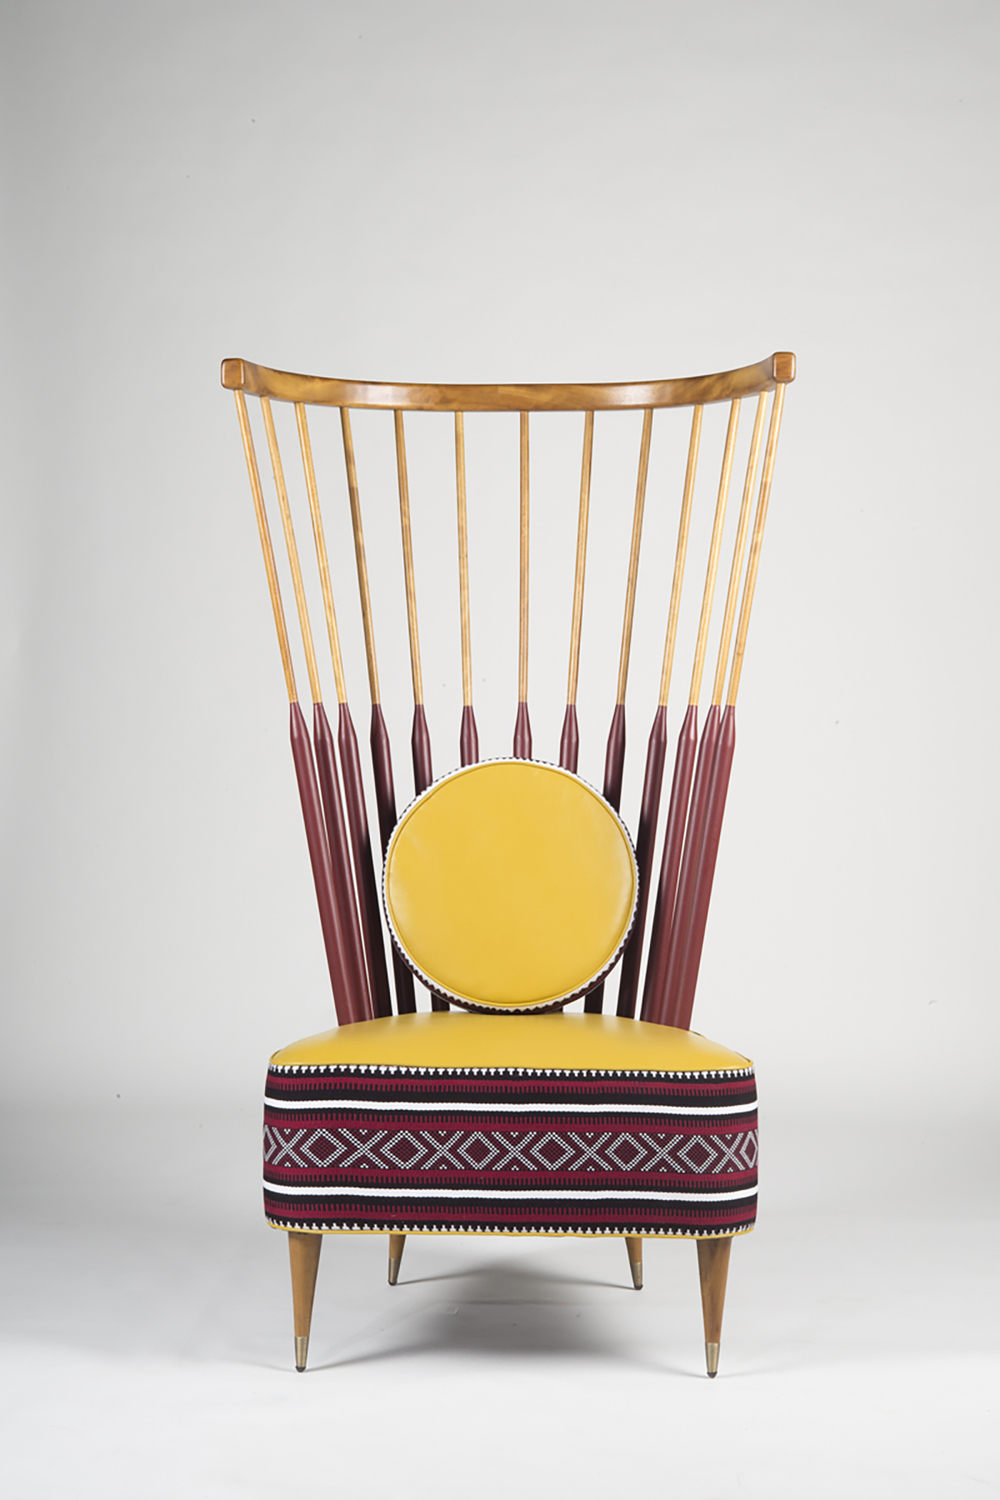 Studio MUJU -Moza Chair 1.jpg